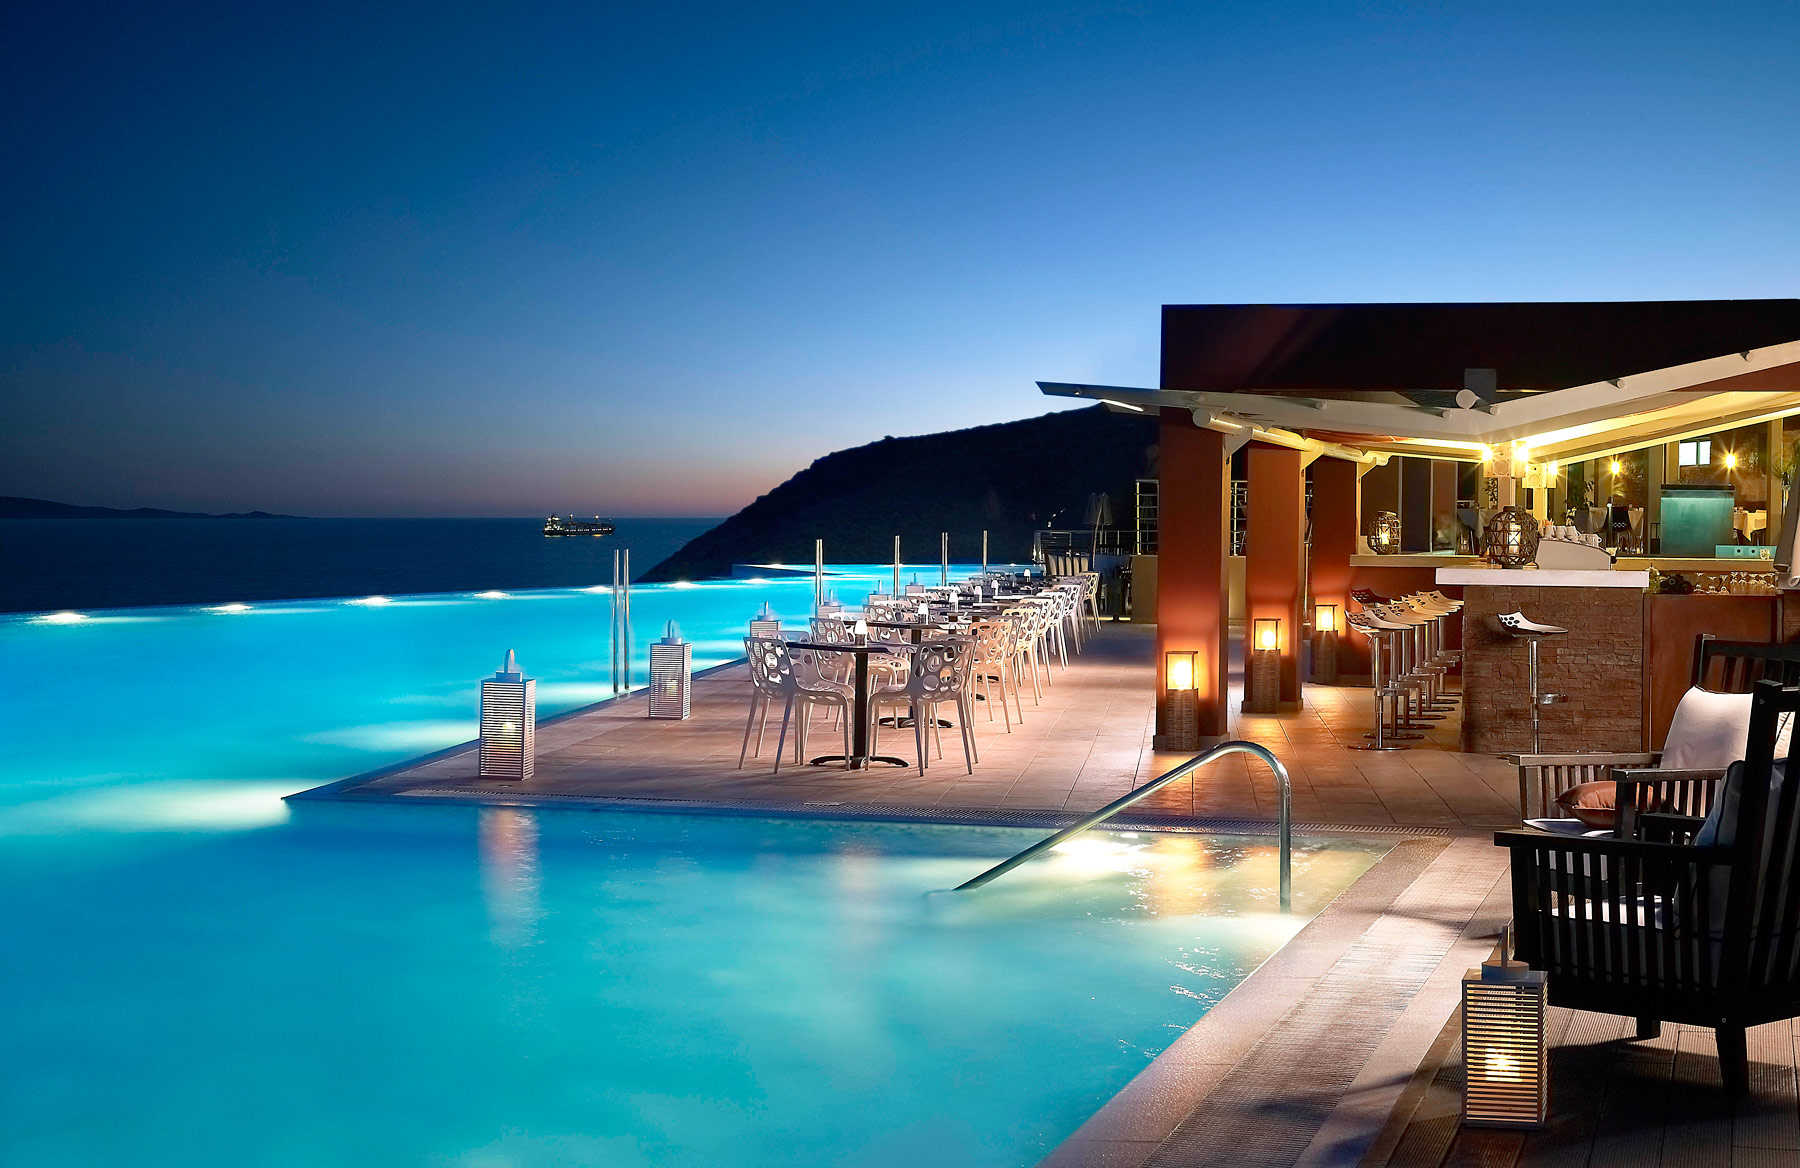 We Look At Some Of Europe's Most Inviting Hotel Pools